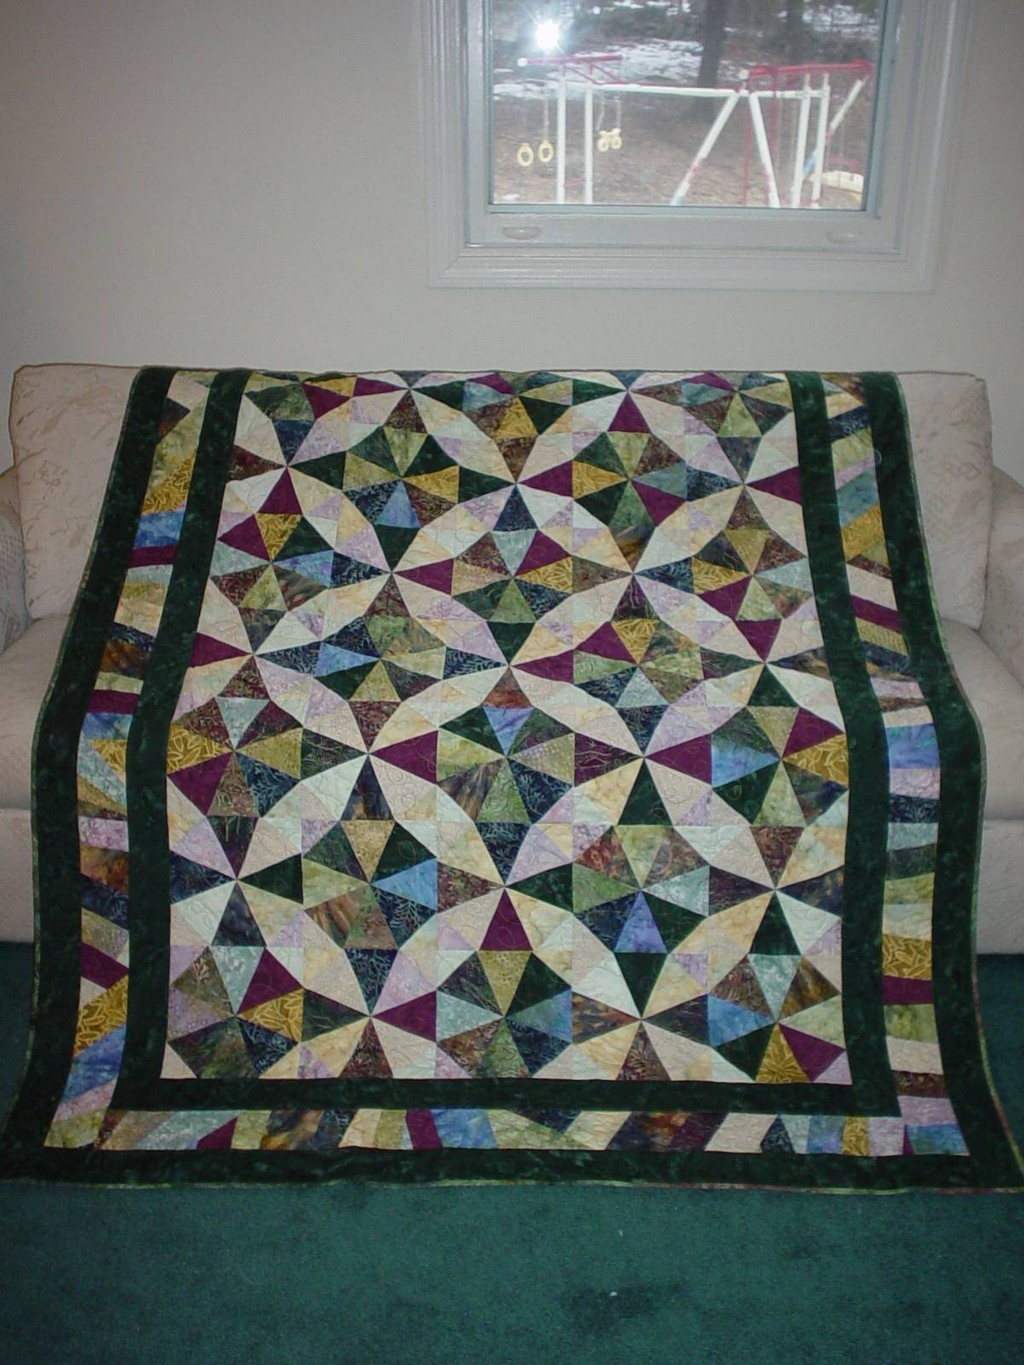 how to make fleece blankets, fleece tie blanket, crochet baby blankets, biddeford electric blankets